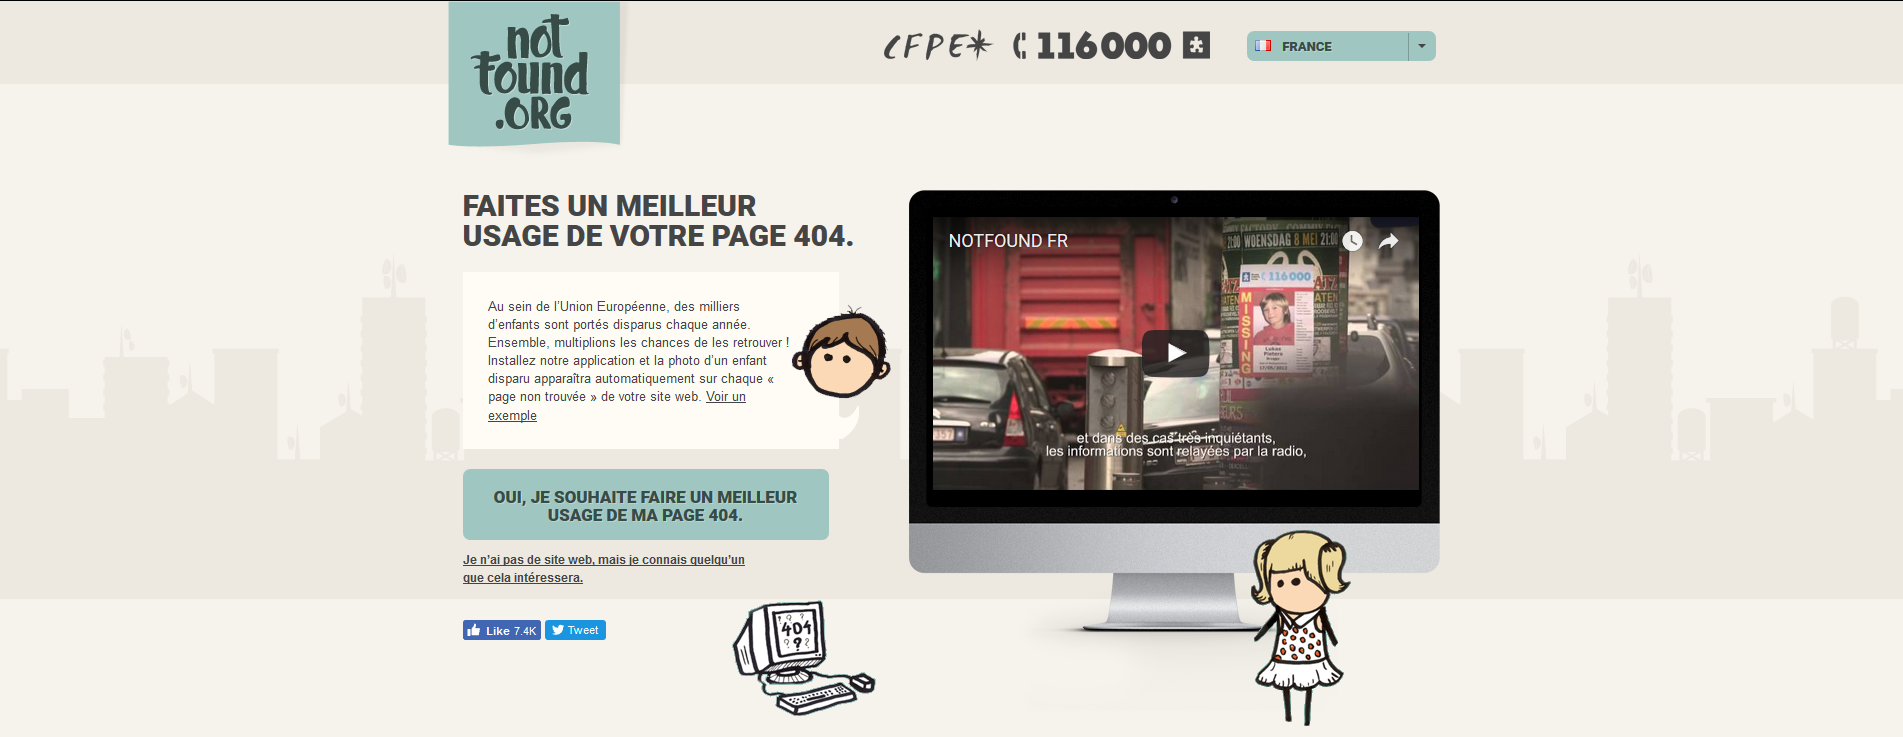 mailleur-usage Page 404 inutile ? Optez pour le Projet NotFound !